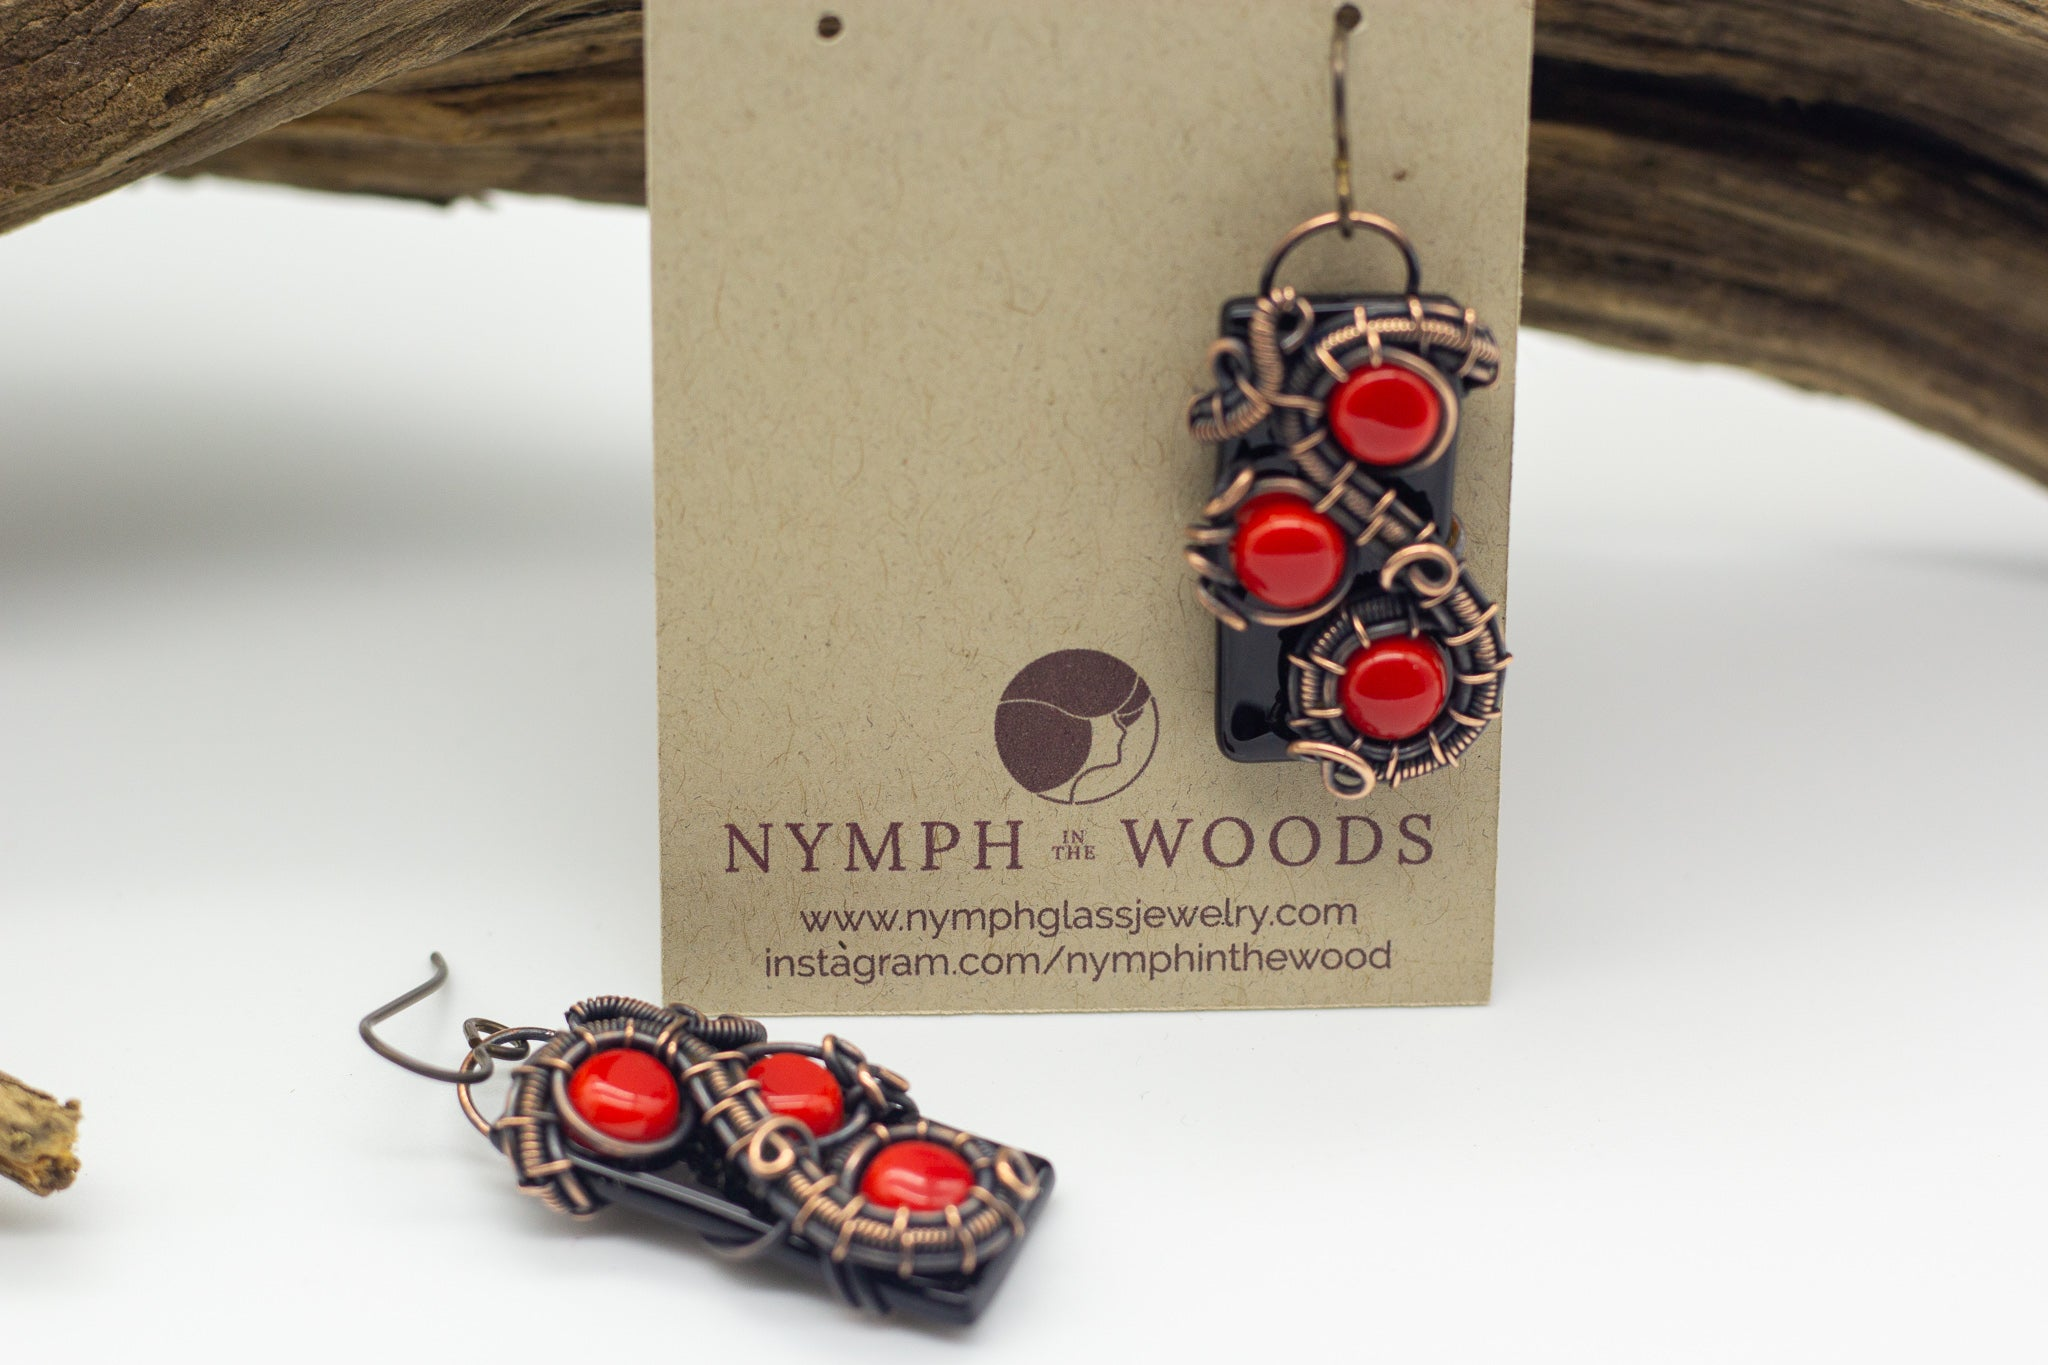 Handmade earring with red and black fused glass and copper wire wrapping